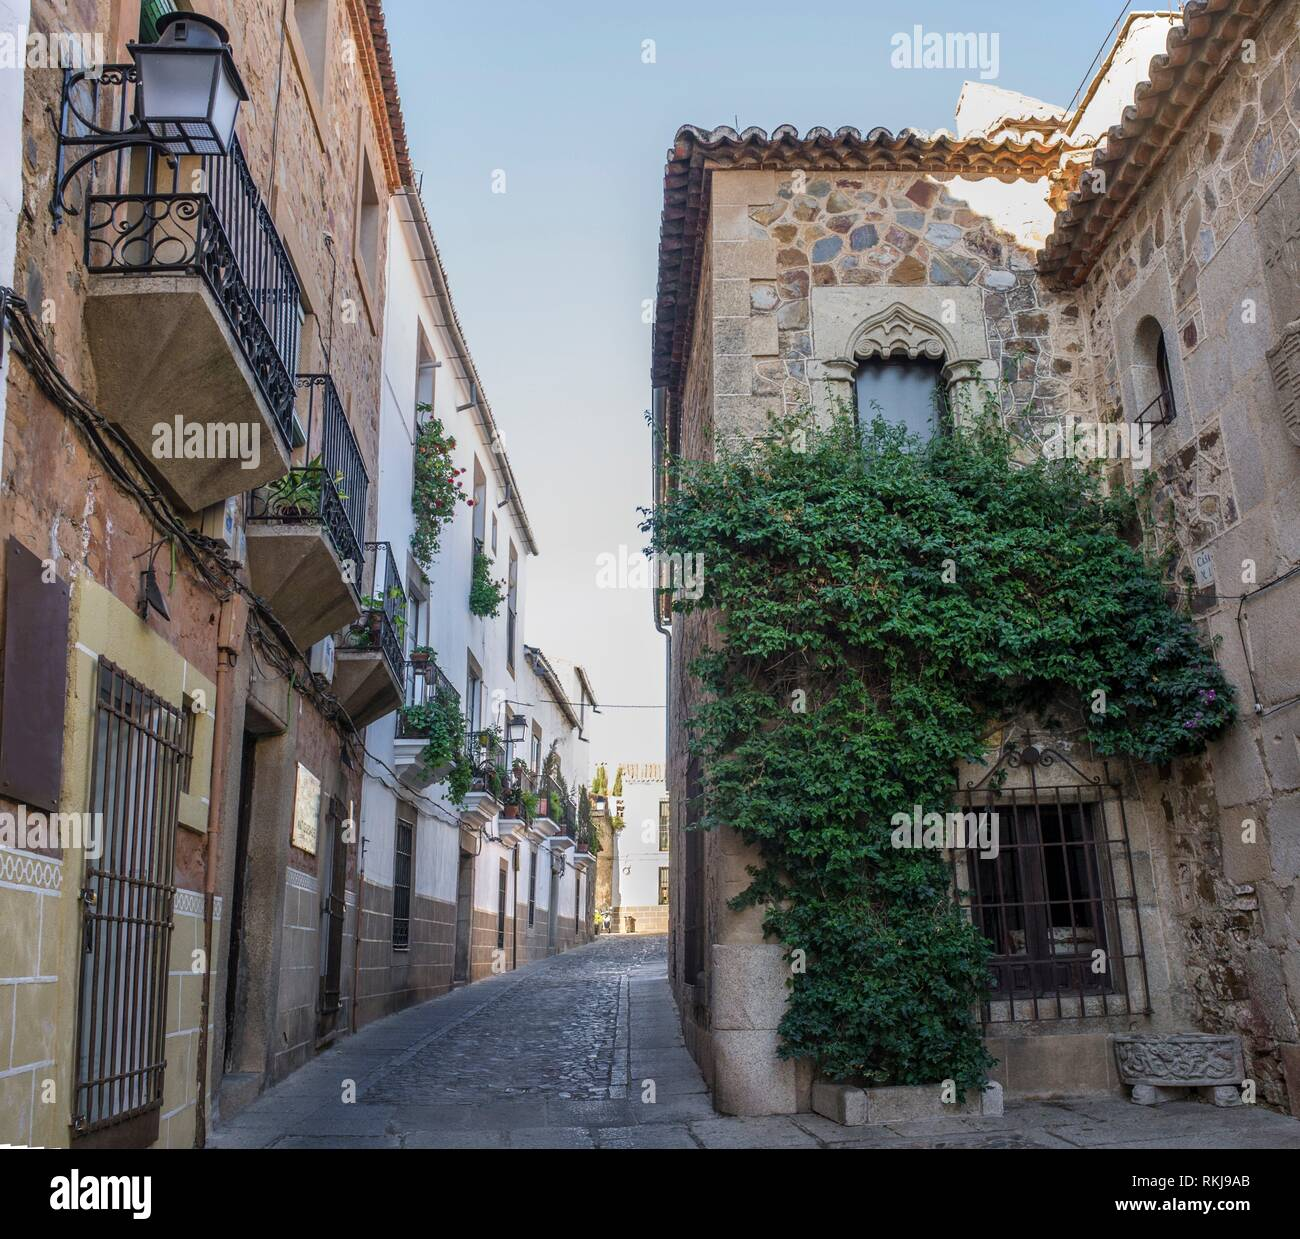 Hospital of Pilgrim Knights Gothic building Caceres historic quarter, Spain. - Stock Image